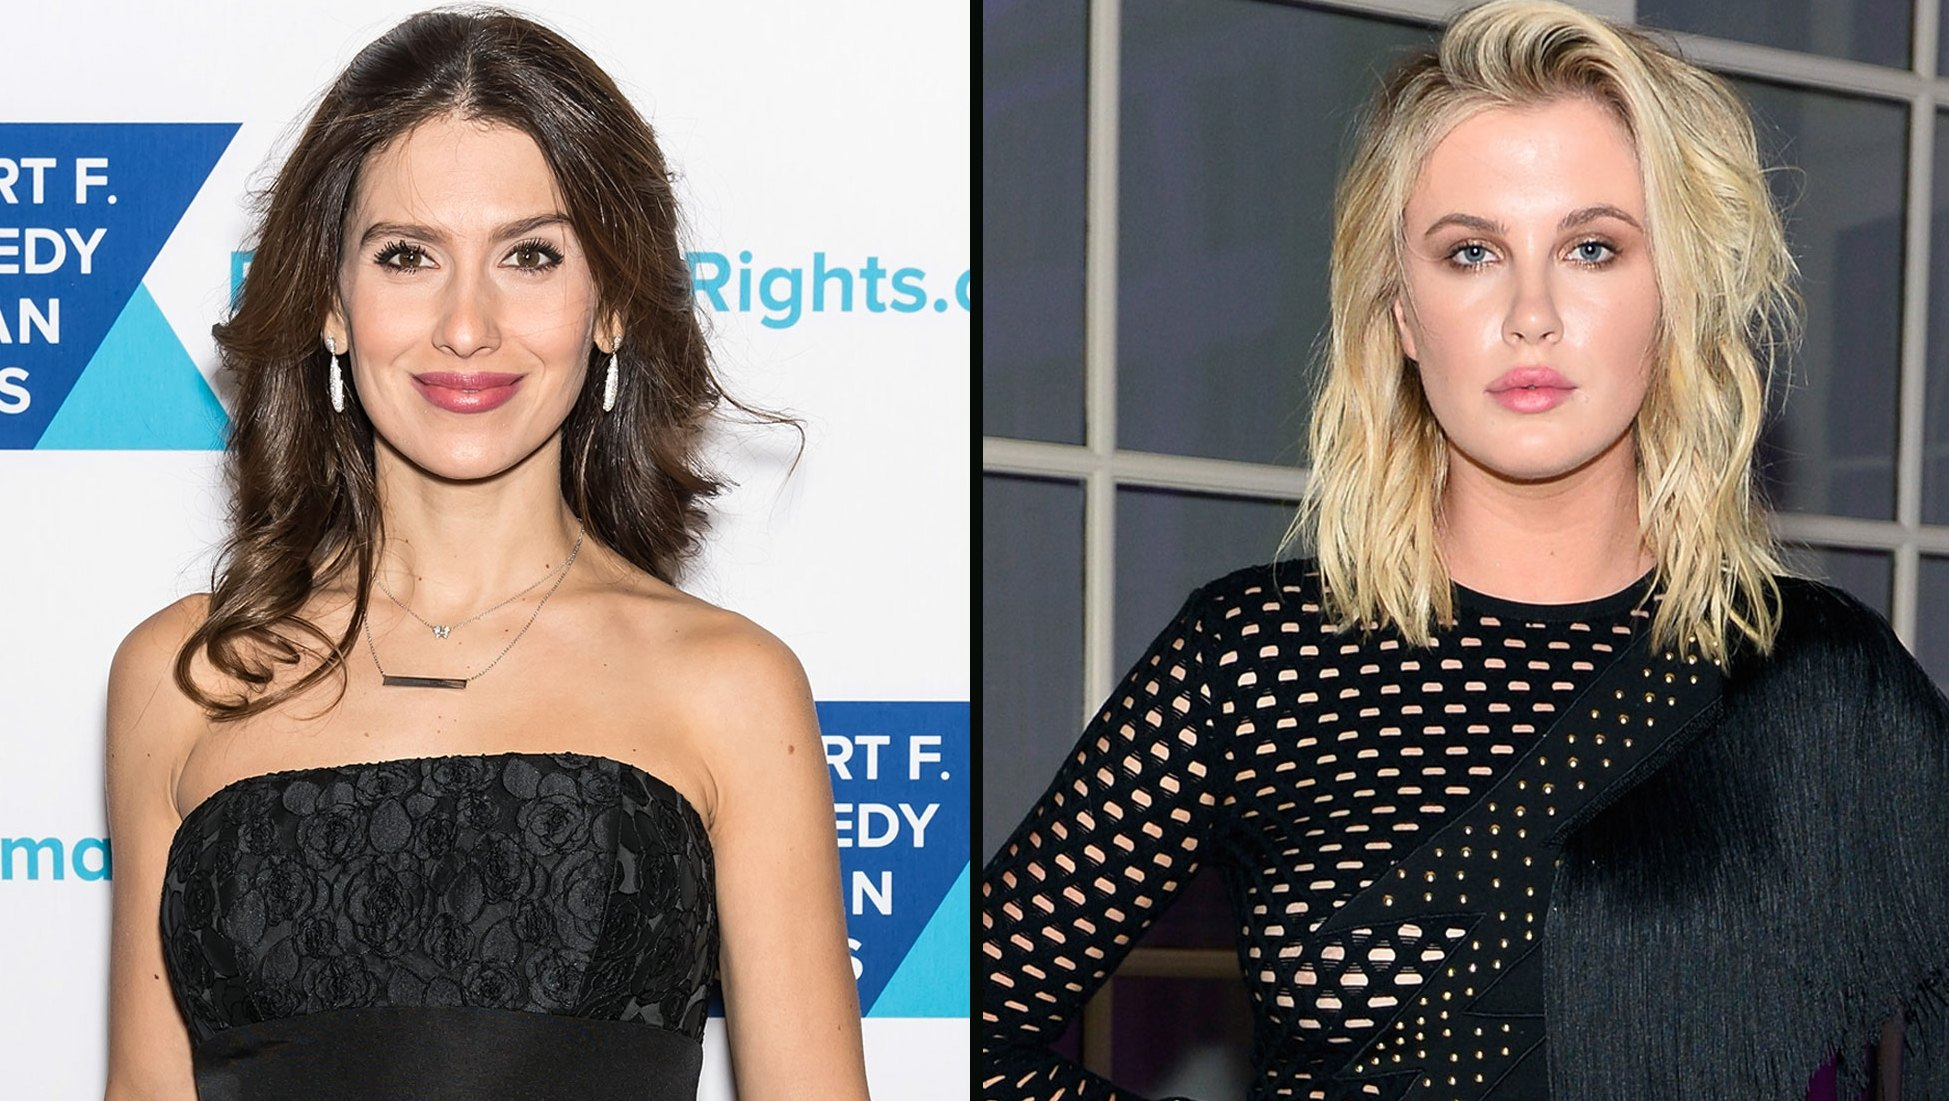 Hilaria Baldwin Gushes About Relationship With Stepdaughter Ireland: 'I Never Tried to' Be Her Mom